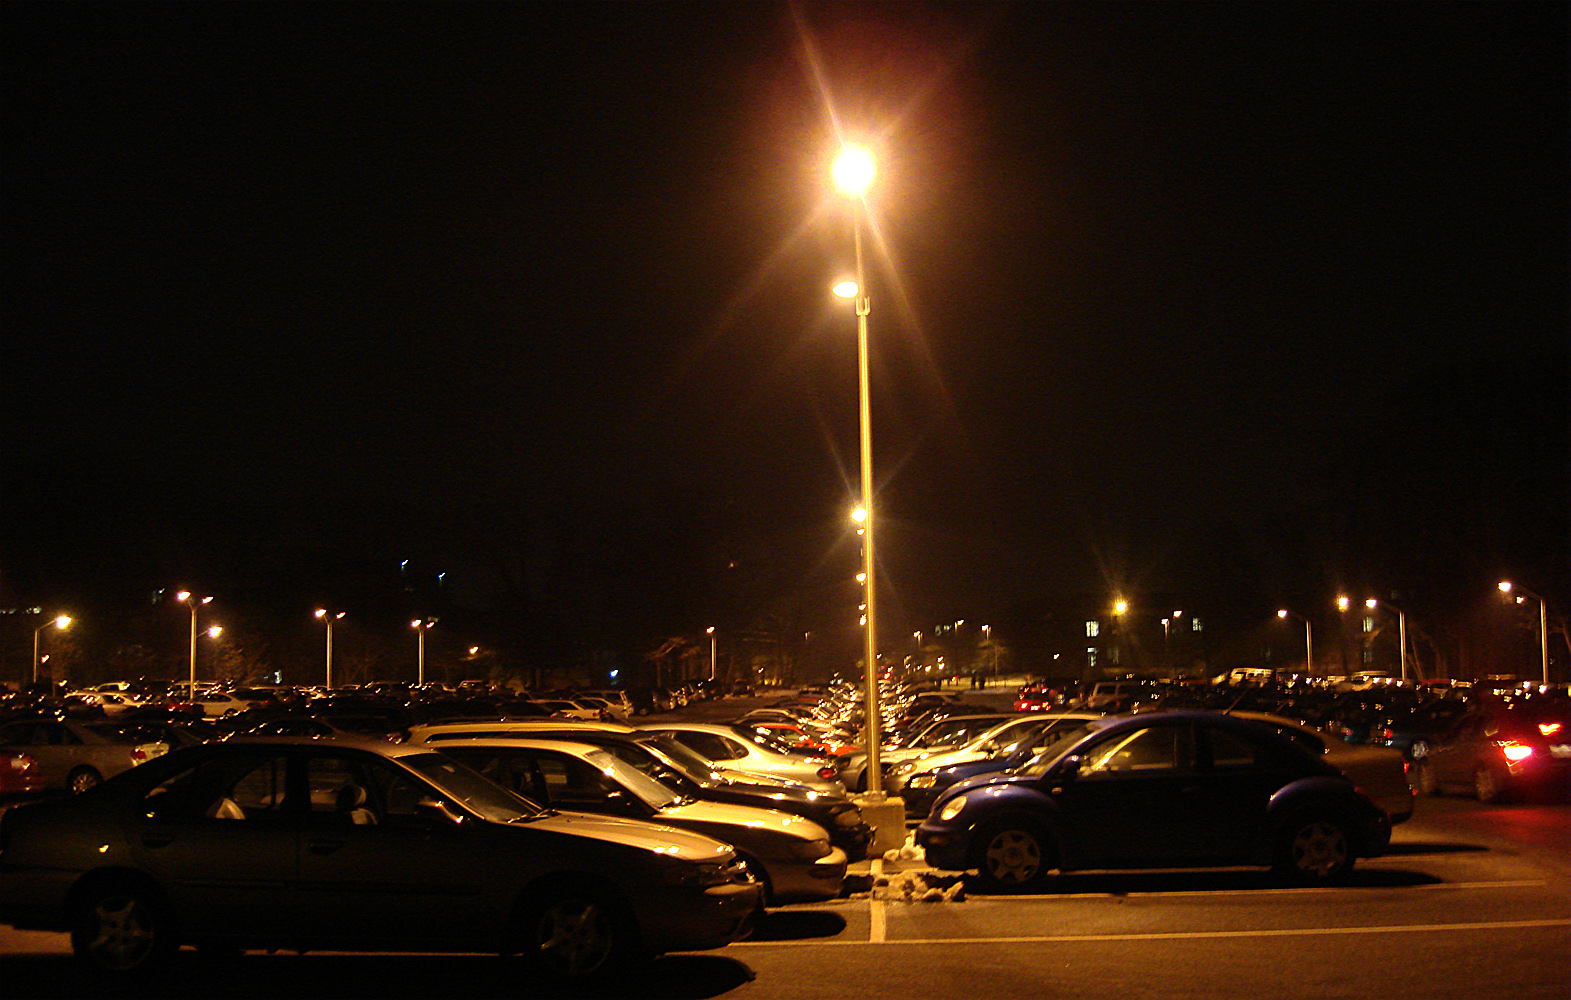 there'z **** in da parking lot